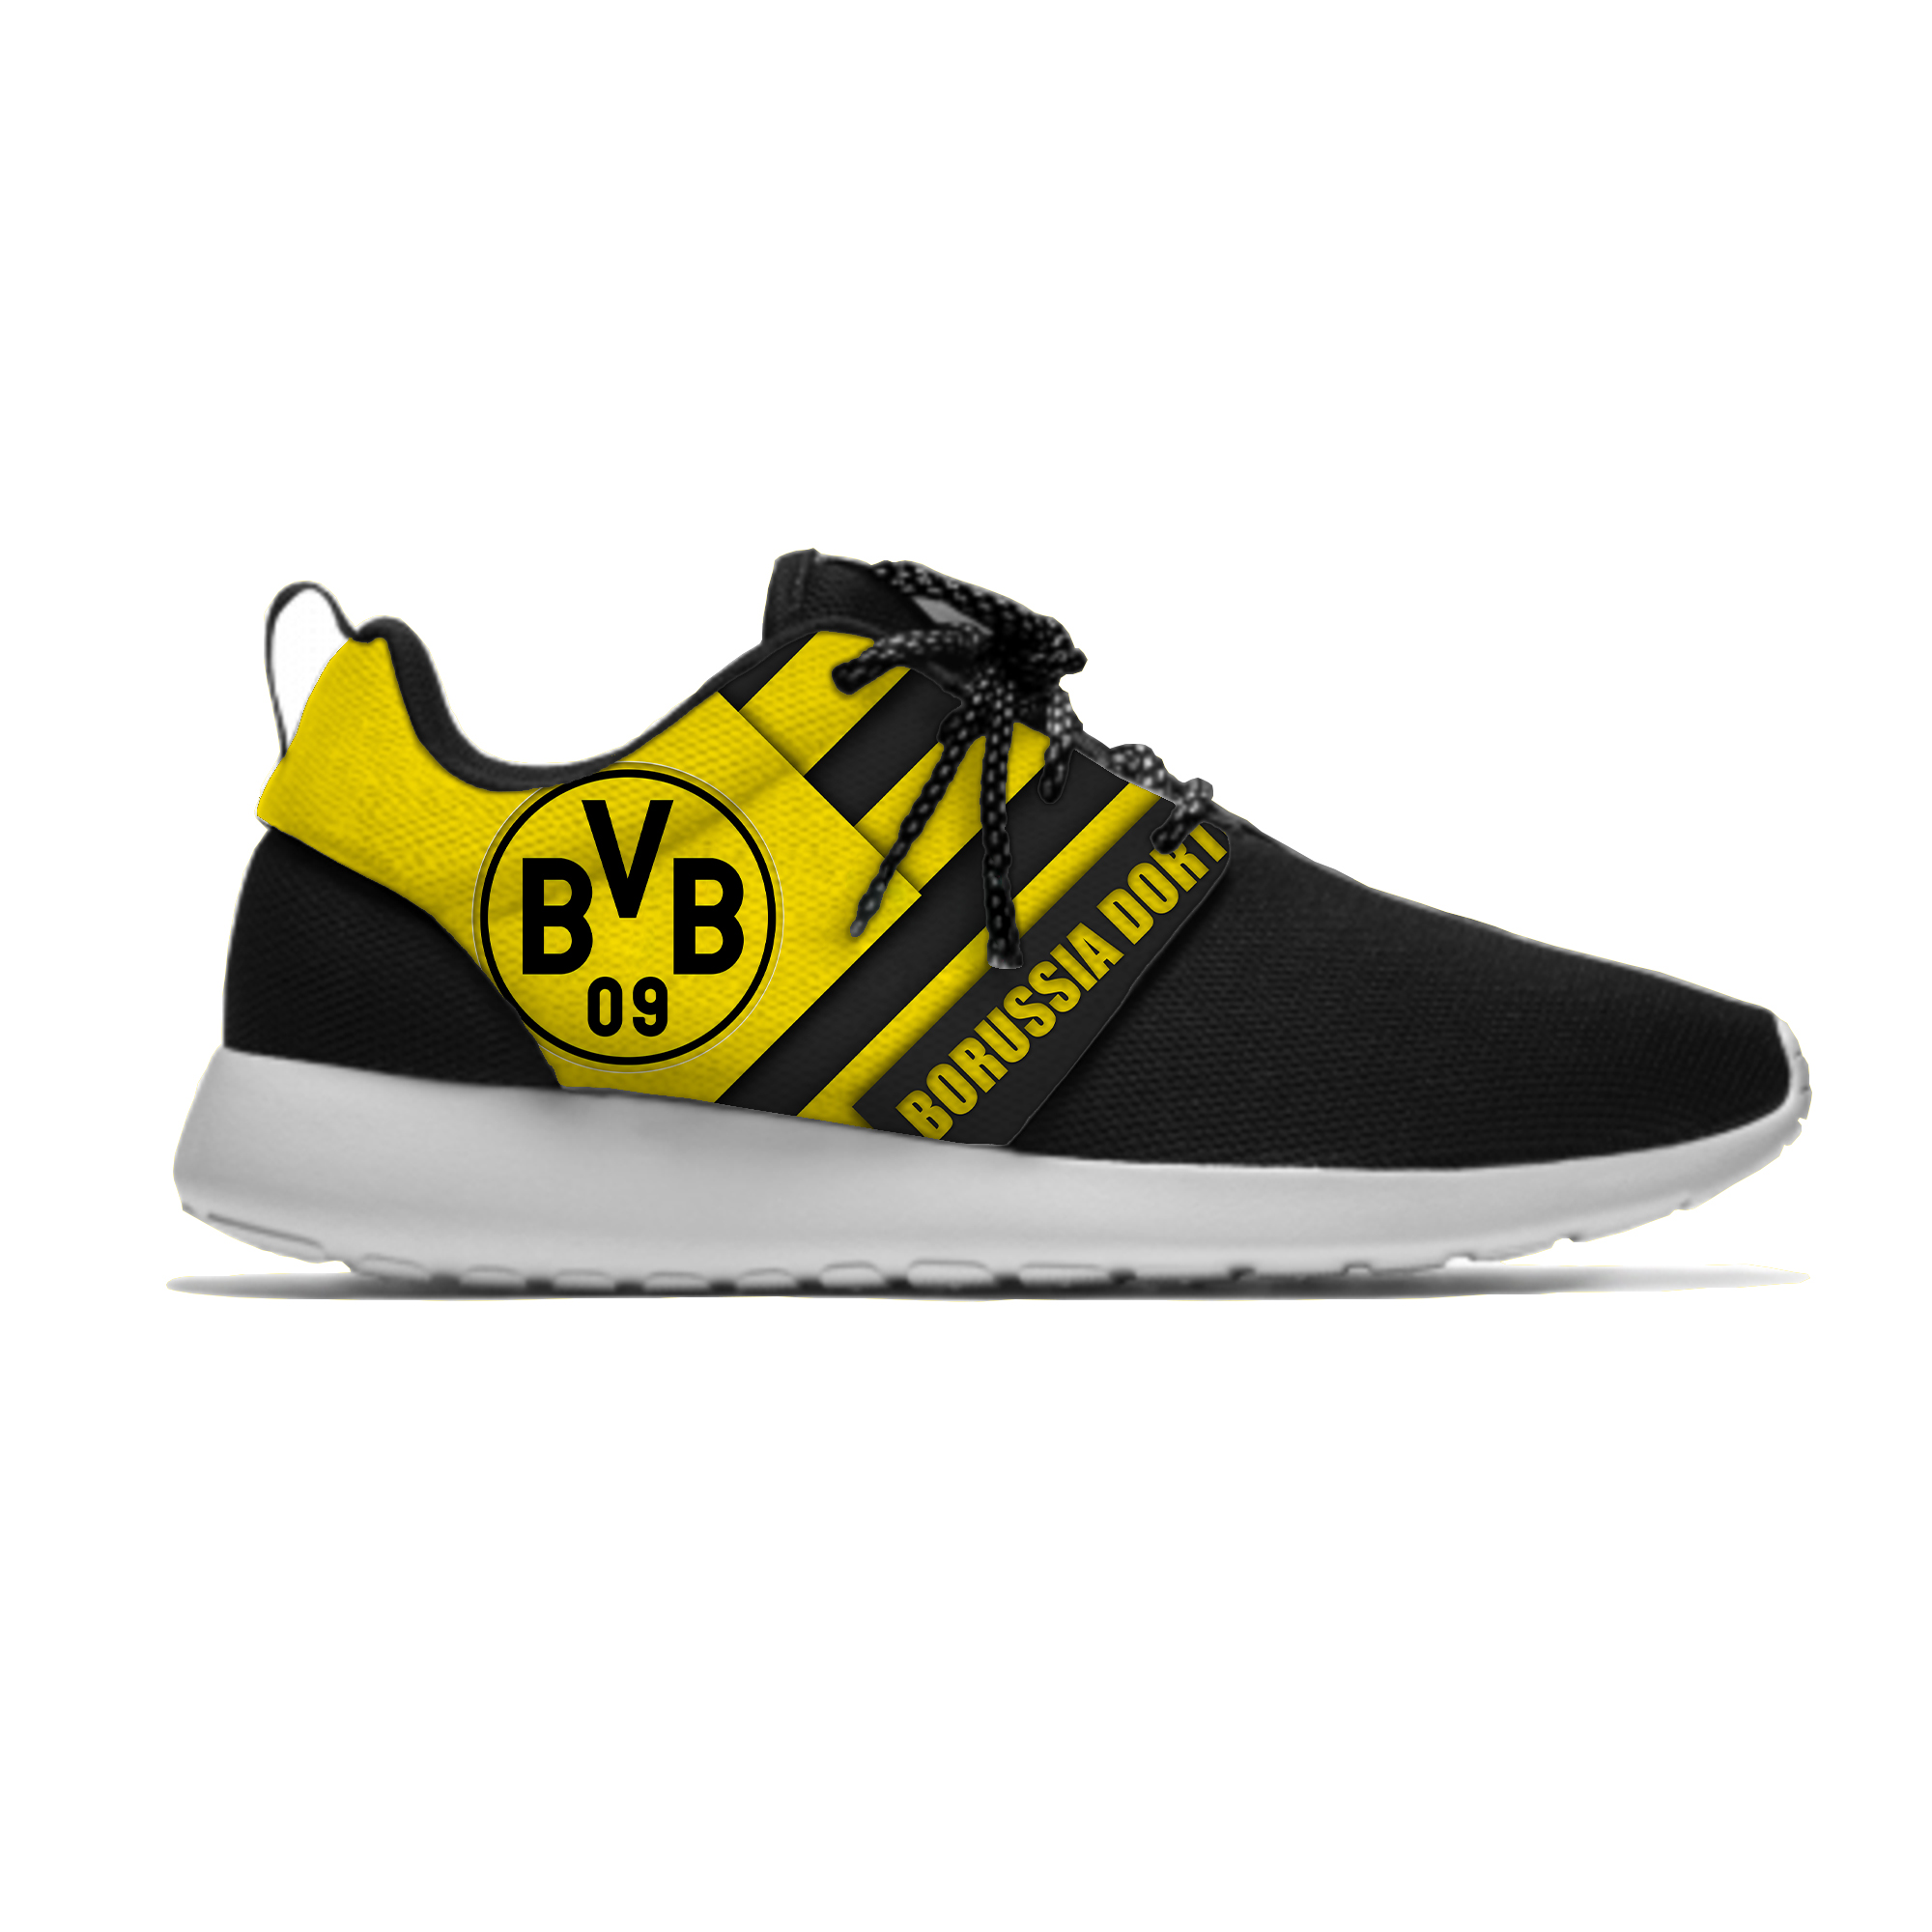 Borussia Dortmund Sport Shoes Football Club FC Fans Soccer Lightweight Breathable Casual Sneakers Men/Women Running Meshy Shoes